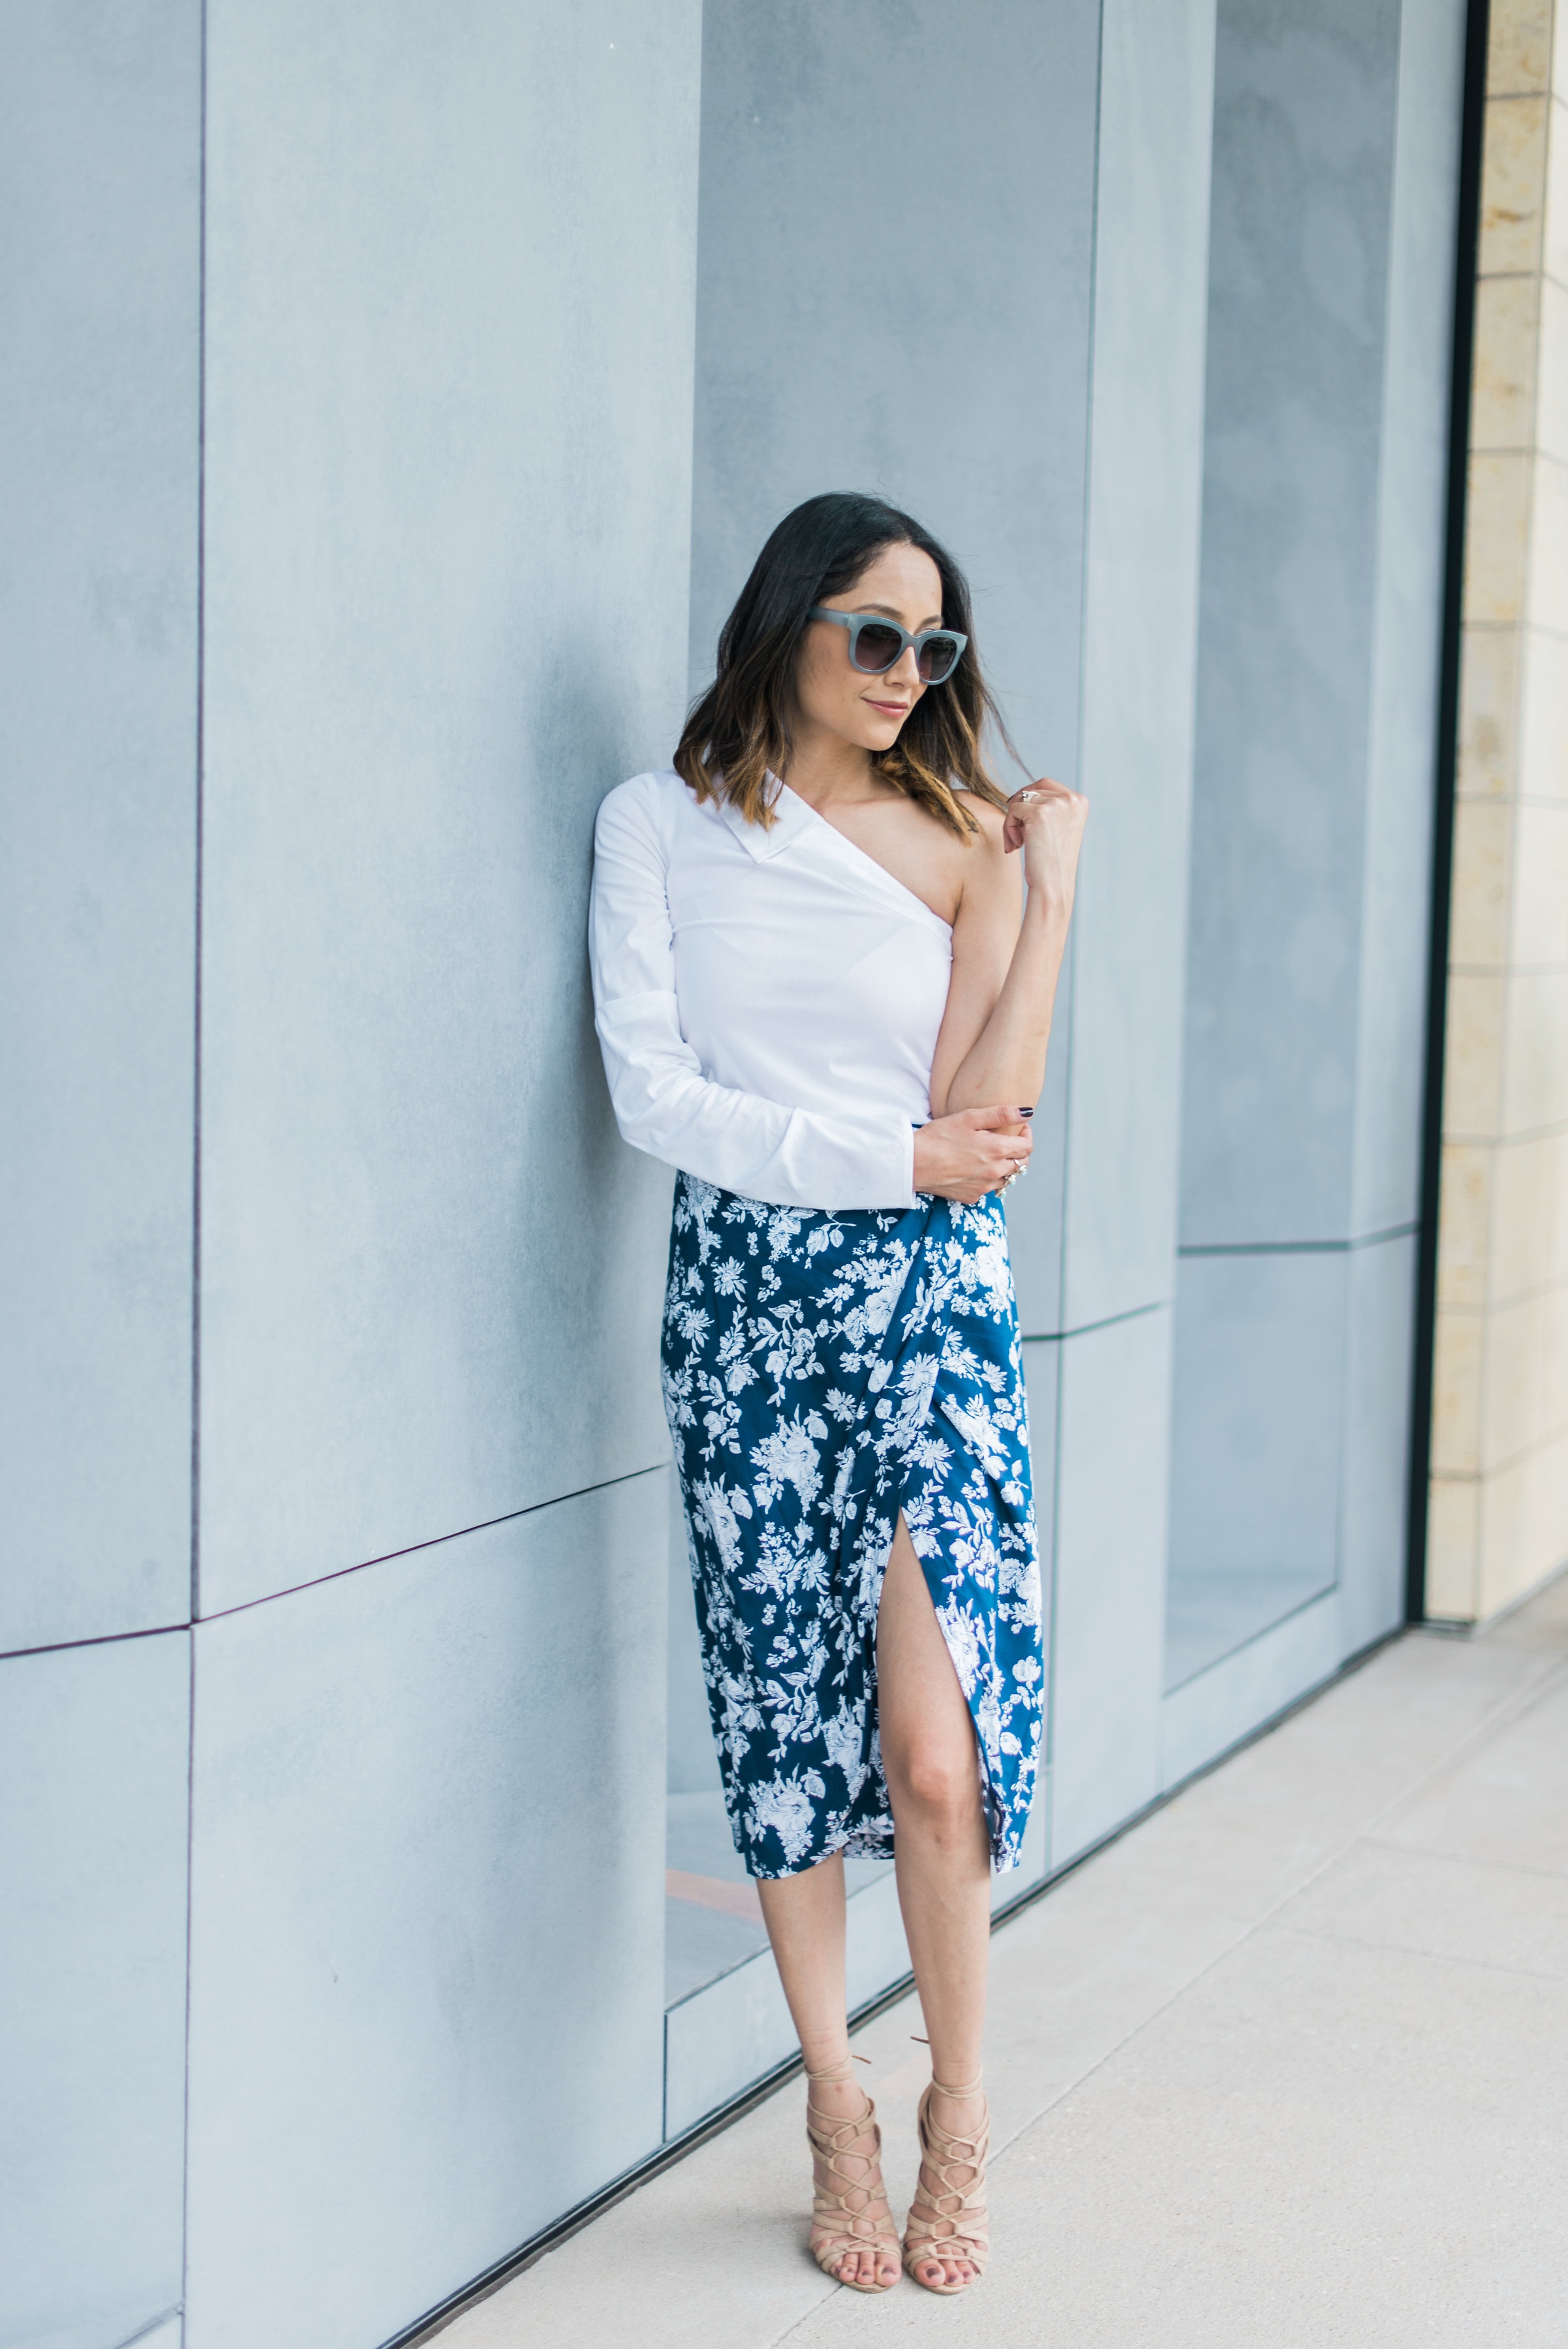 Chic wrap skirt